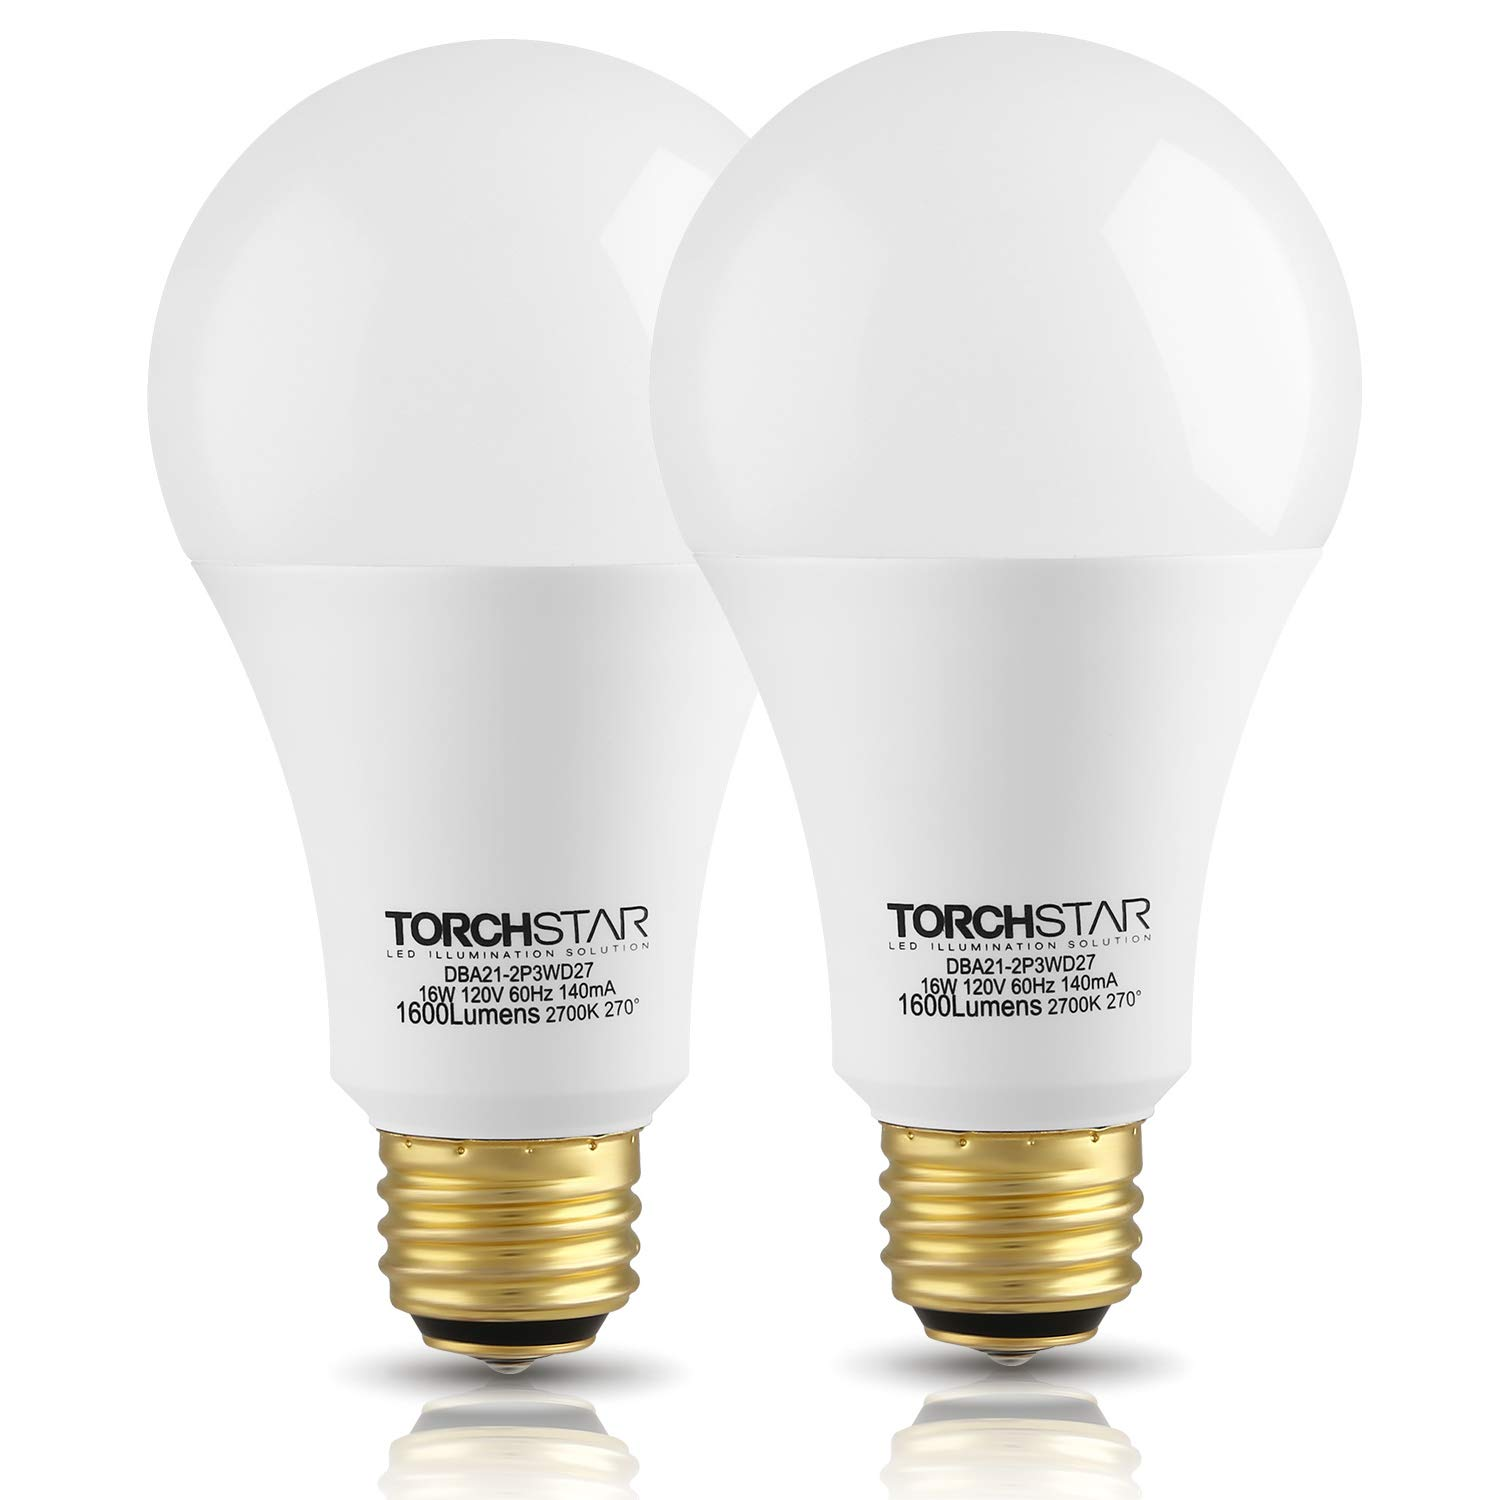 TORCHSTAR 3-Way 40/60/100W Equivalent LED A21 Light Bulb, ENERGY STAR + UL-listed, 2700K Soft White, E26 Medium Screw Base, for Table Lamp, Bedside Lamp, Pack of 2